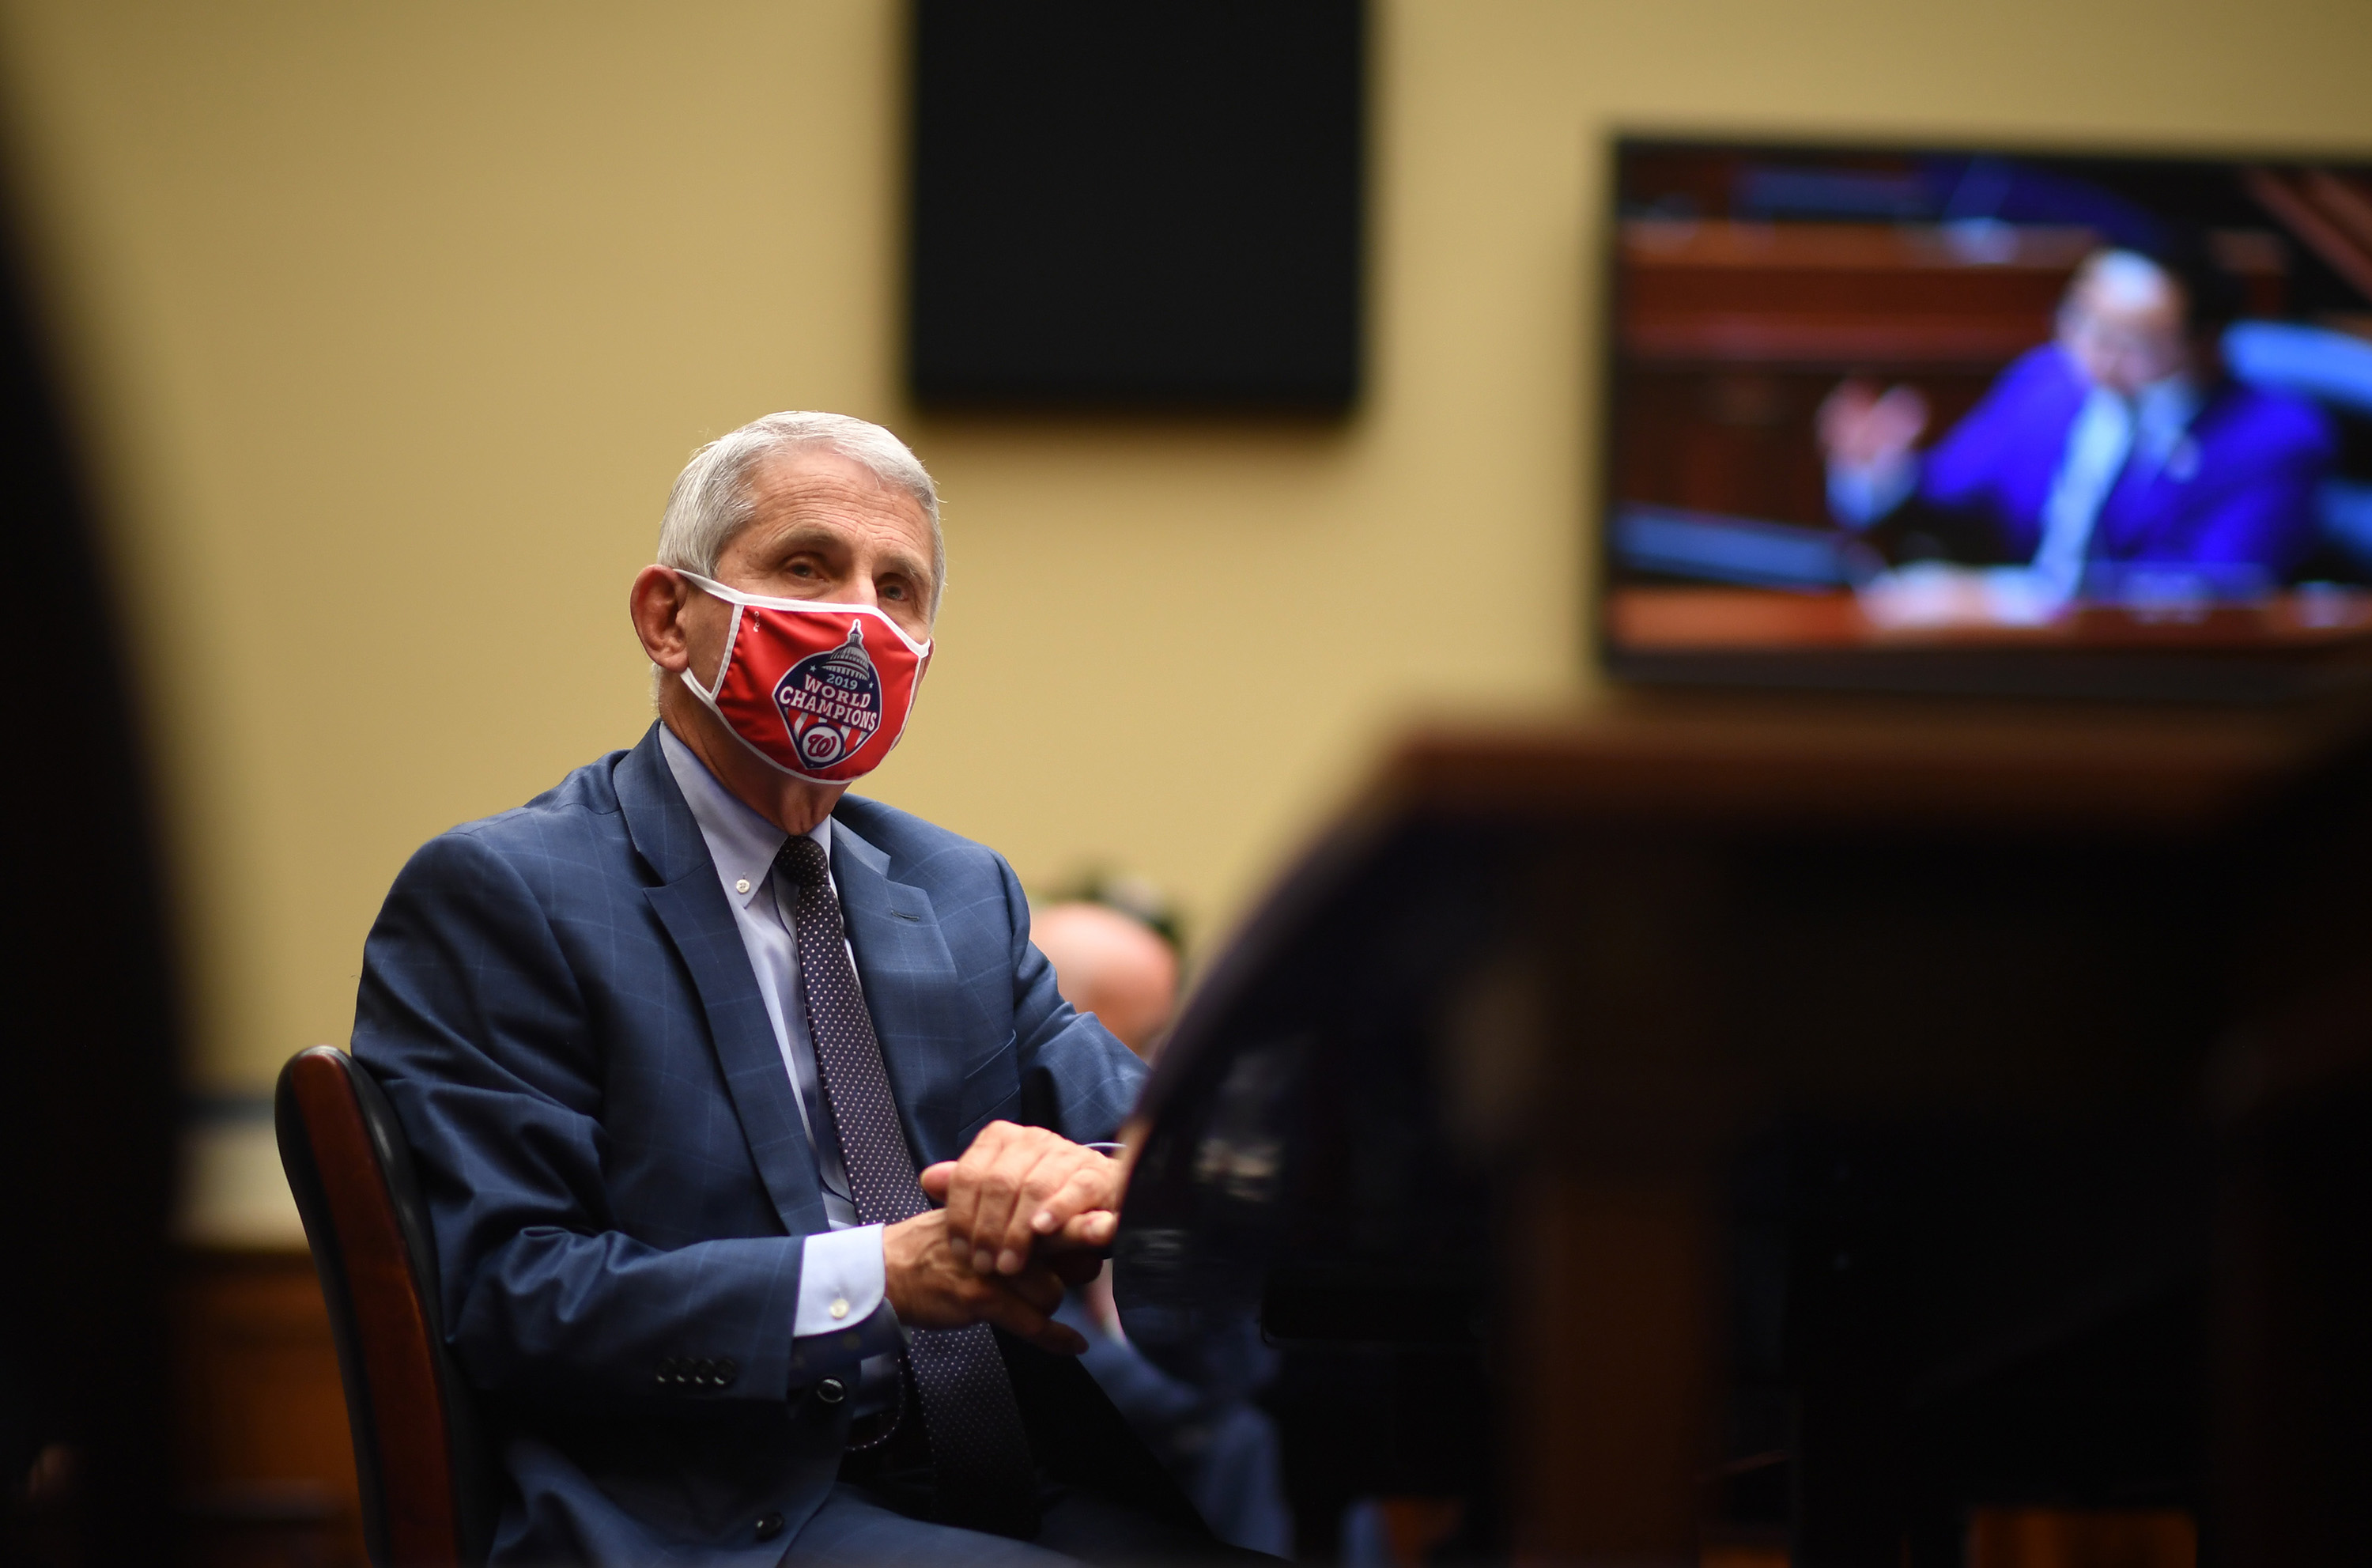 Dr. Anthony Fauci, director of the National Institute of Allergy and Infectious Diseases, testifies before a House Subcommittee on the coronavirus crisis on July 31, in Washington, DC.